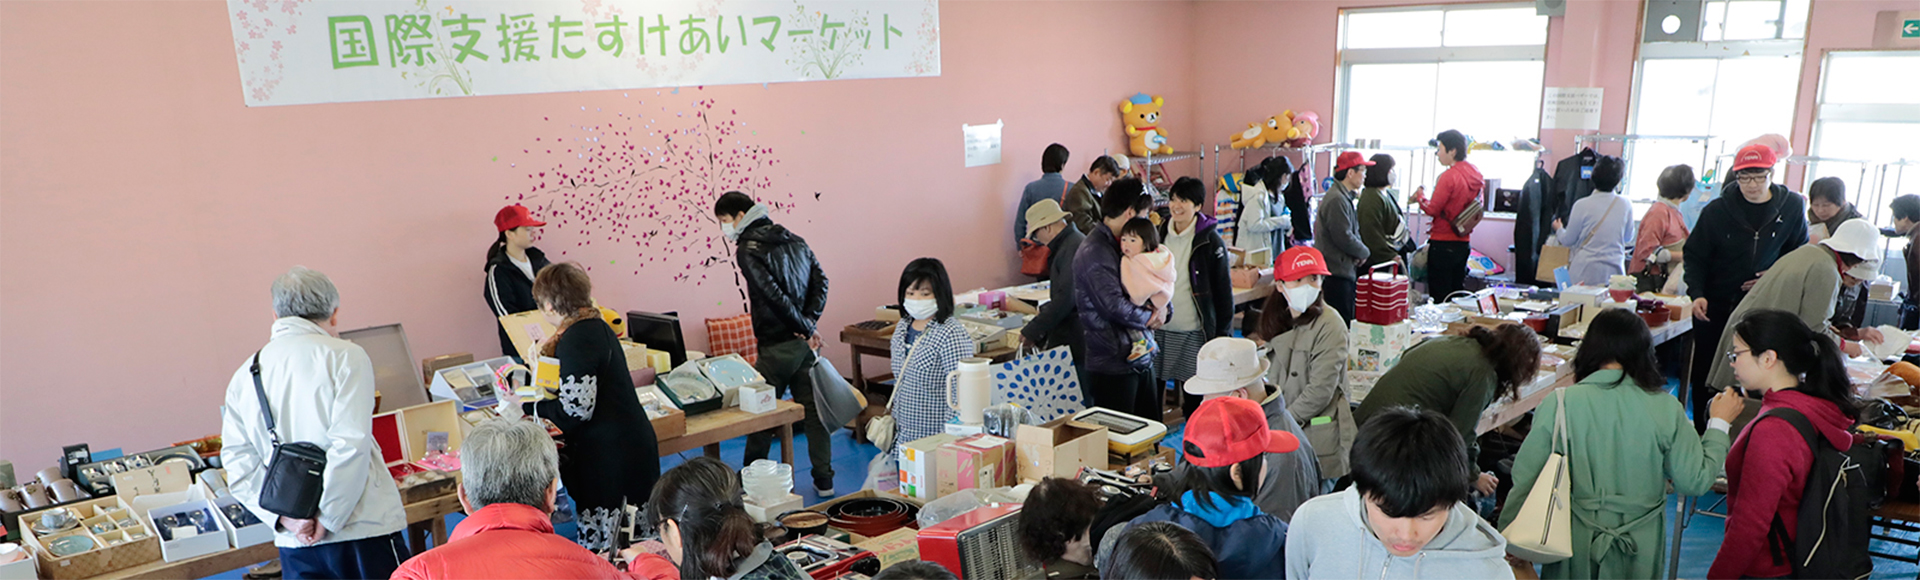 (English) Annual Charity Bazaar Held